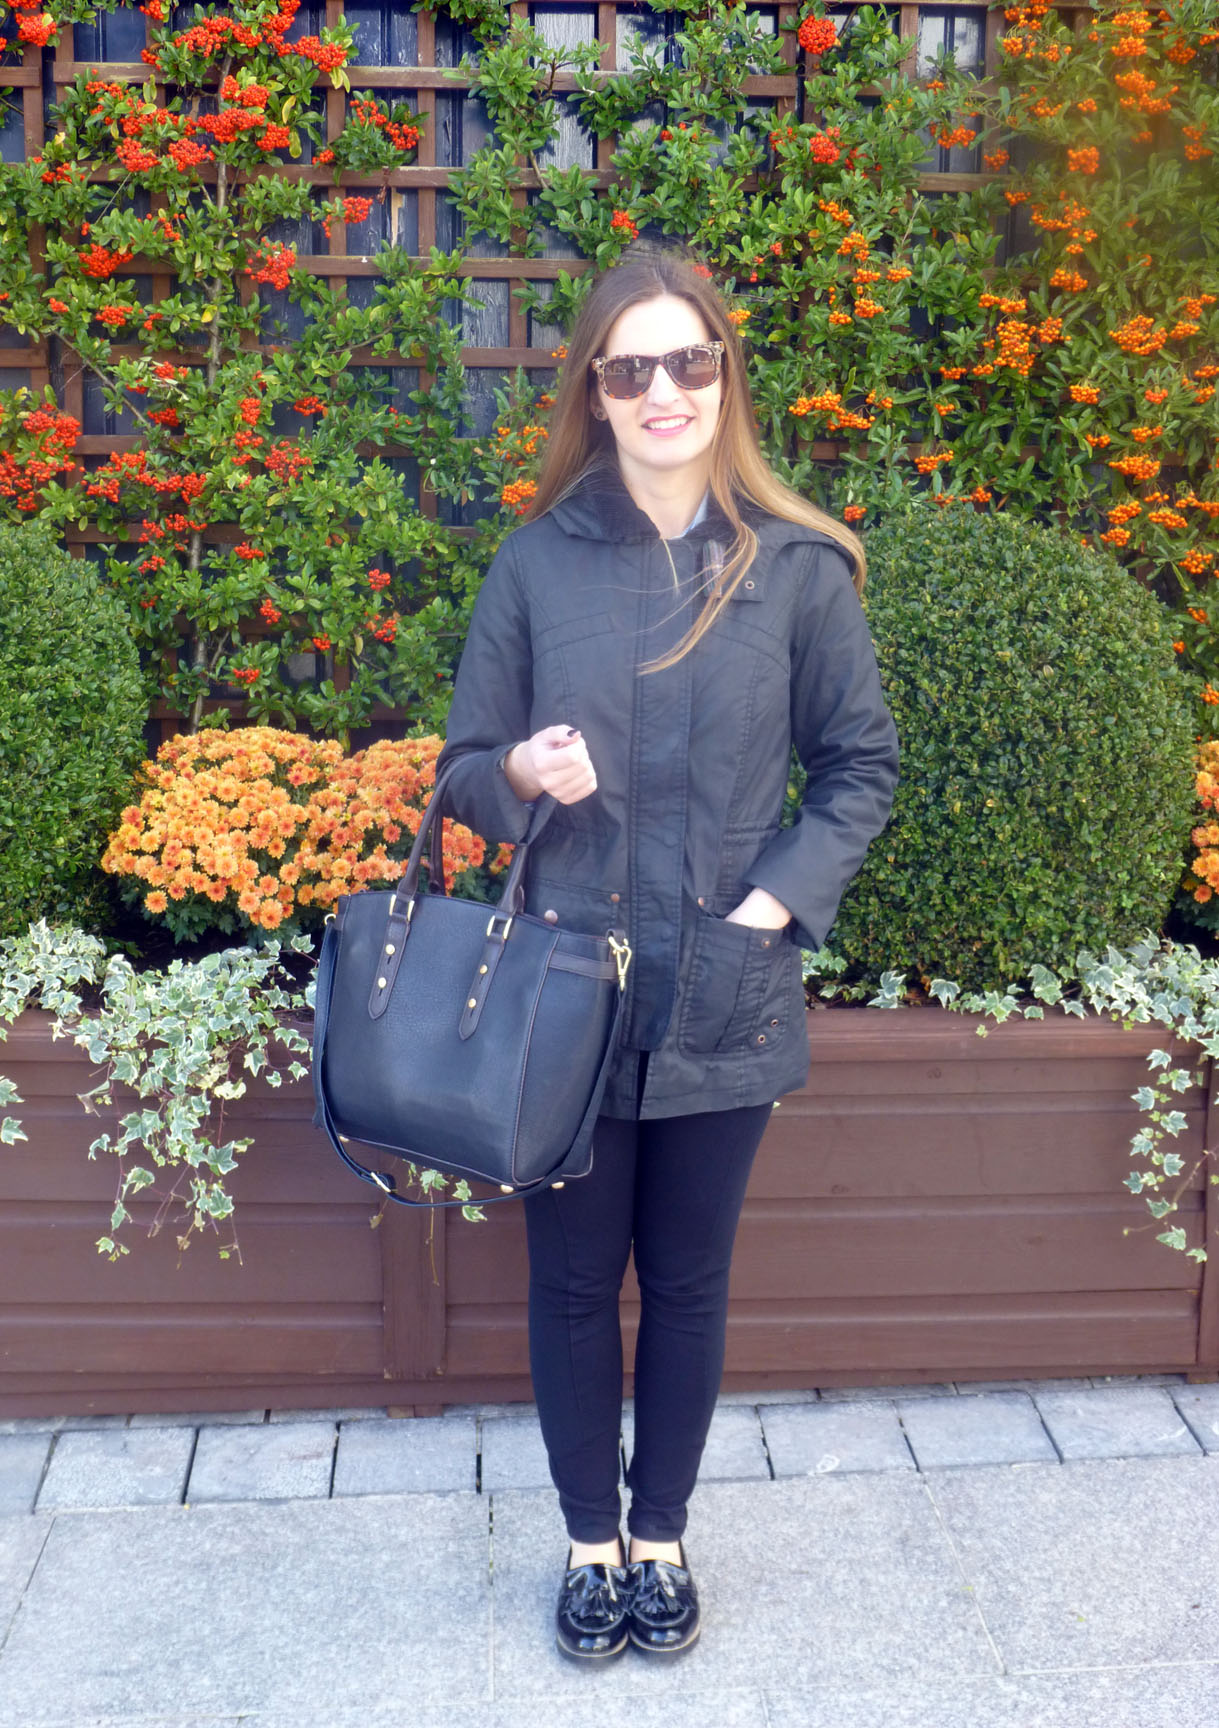 kildare village shopping trip, willow lane blog